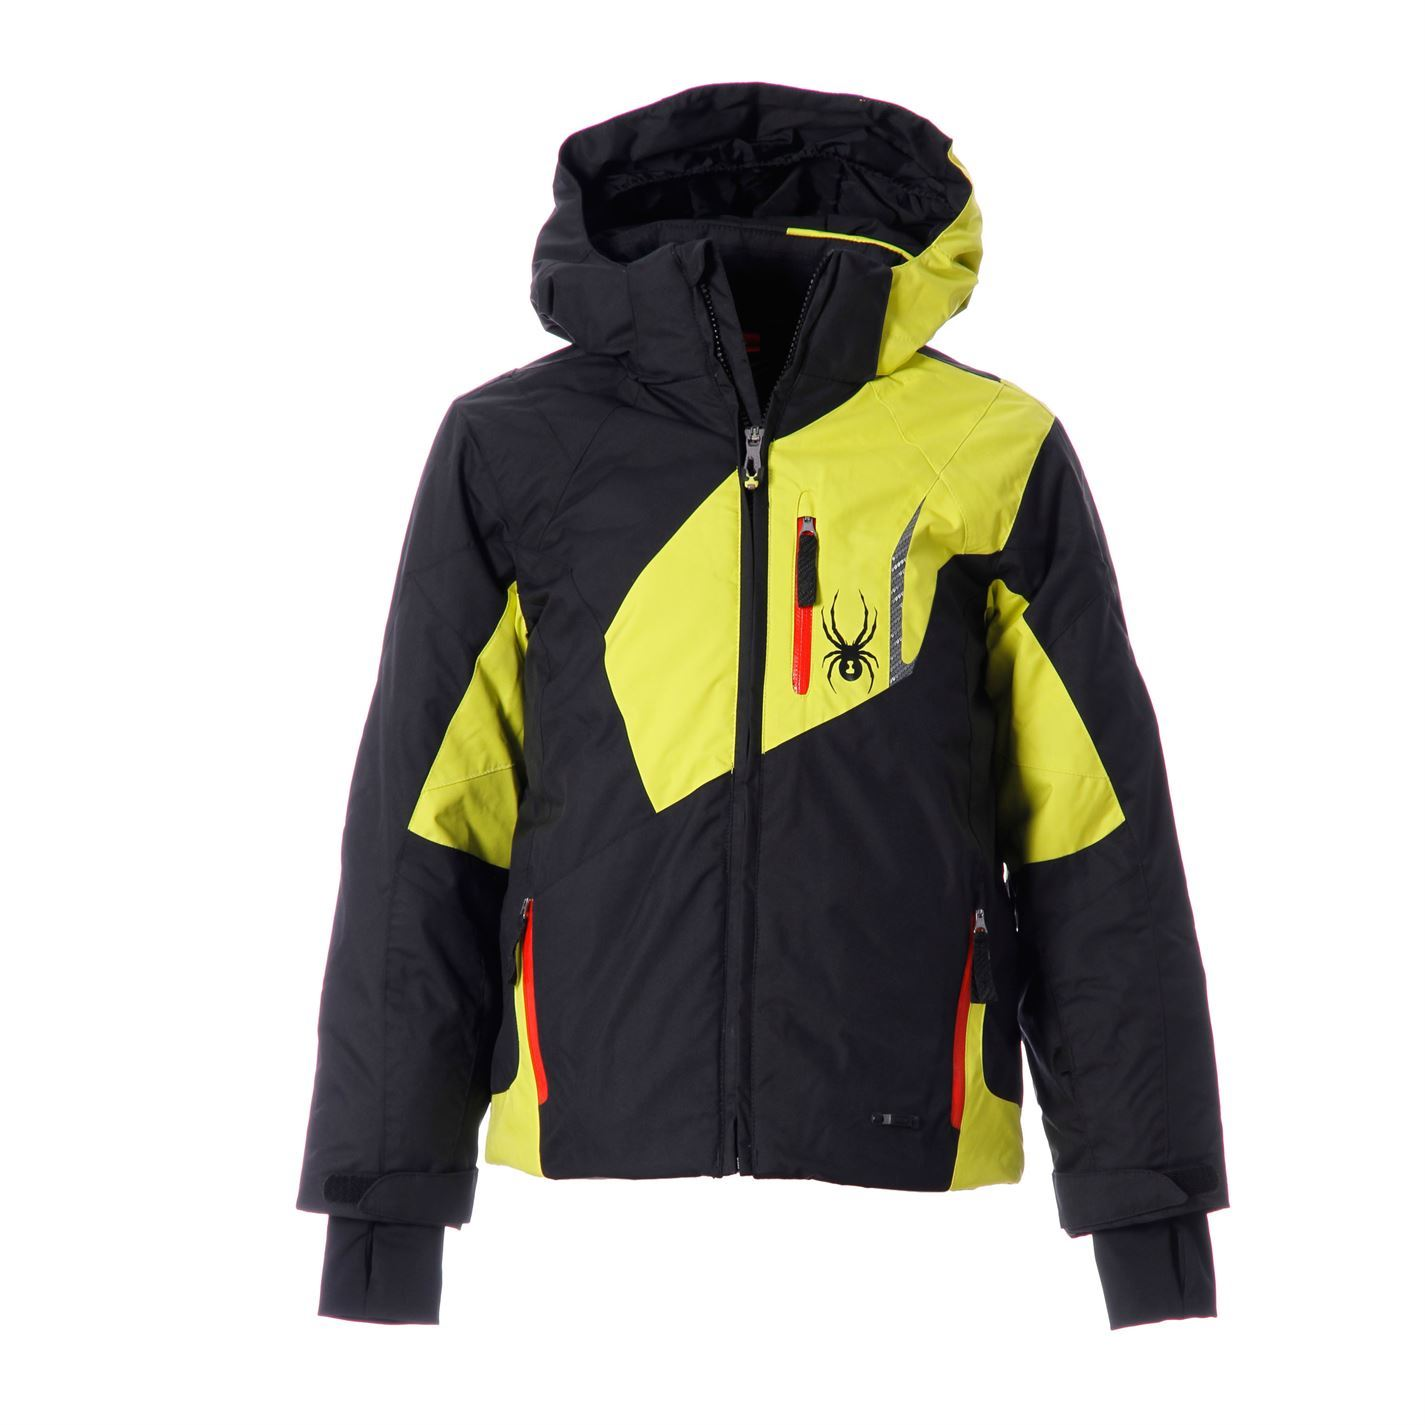 Insulated Kids Ski Jackets-These are the most common style of kids ski jackets and work the best for most children that ski. An insulated ski jacket as the name implies is a ski jacket with built in insulation.